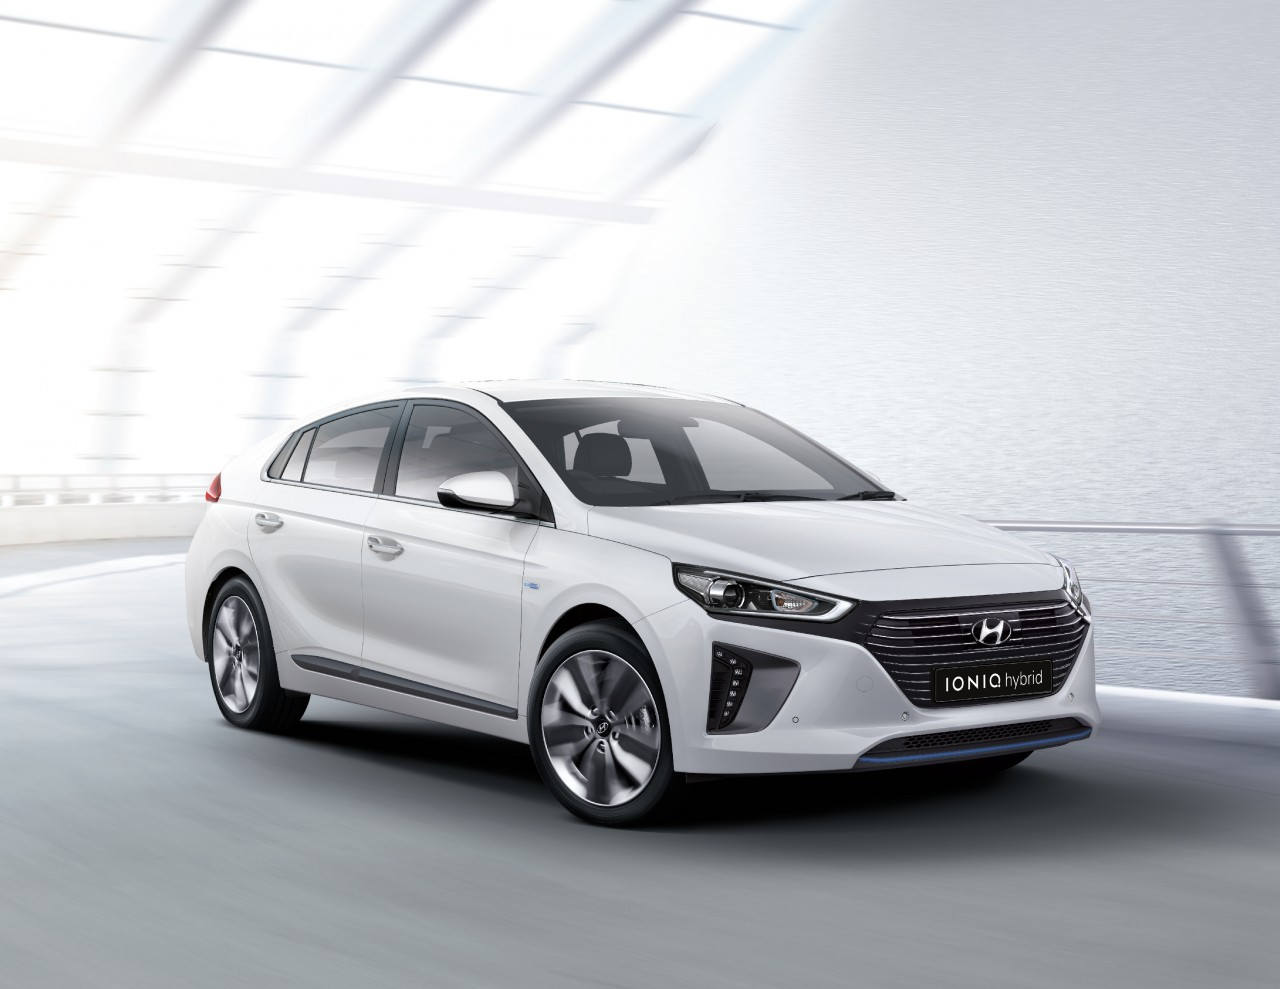 hyundai launches the eco friendly and high tech ioniq hybrid in malaysia. Black Bedroom Furniture Sets. Home Design Ideas